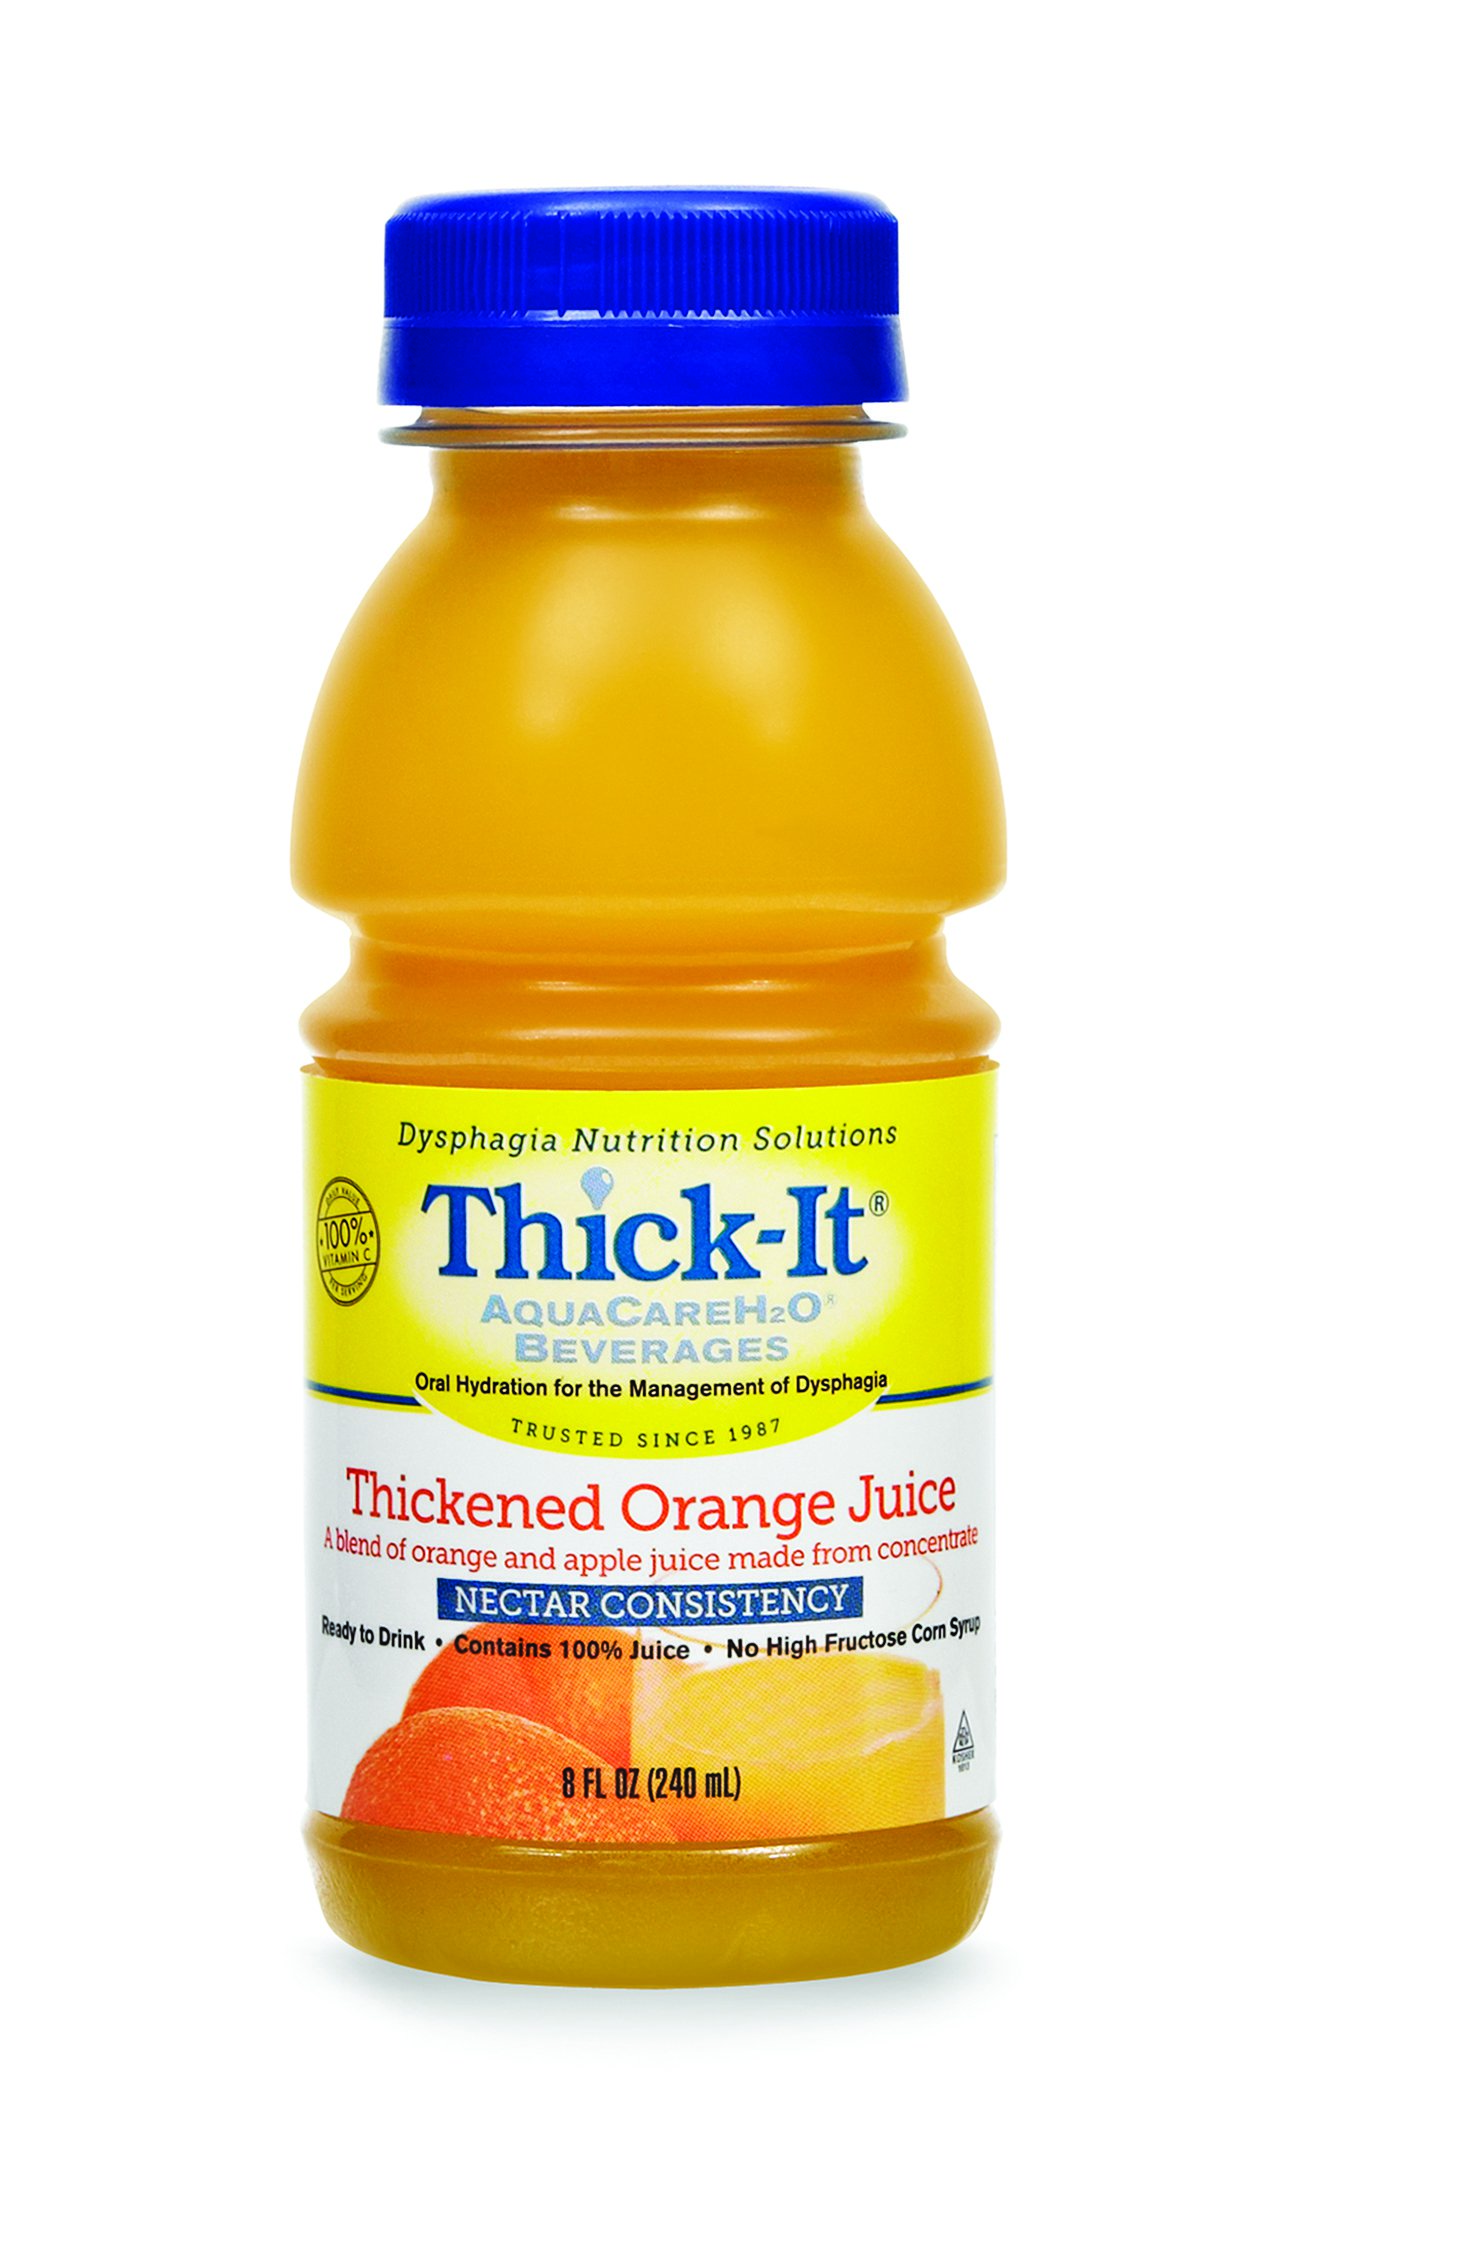 Thick-It AquaCareH2O Thickened Beverage 8 oz. Bottle Orange Flavor Ready to Use Nectar Consistency, B476-L9044 - EACH